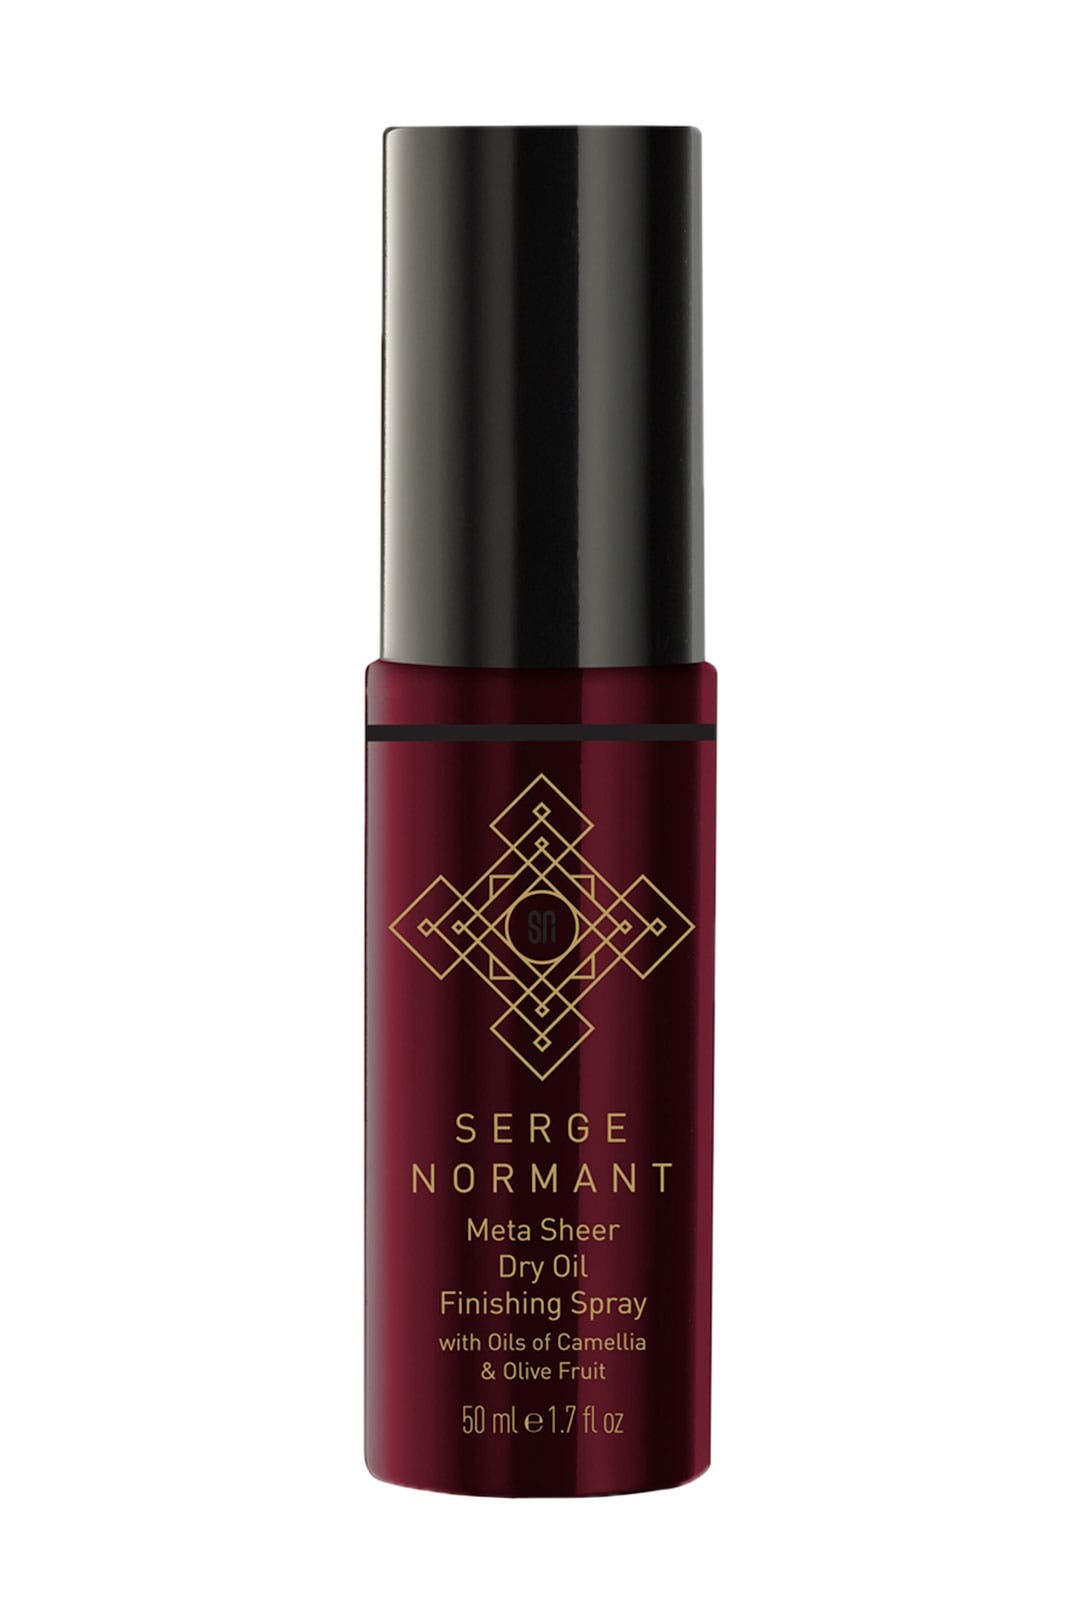 Dry Oil Finishing Spray by Serge Normant